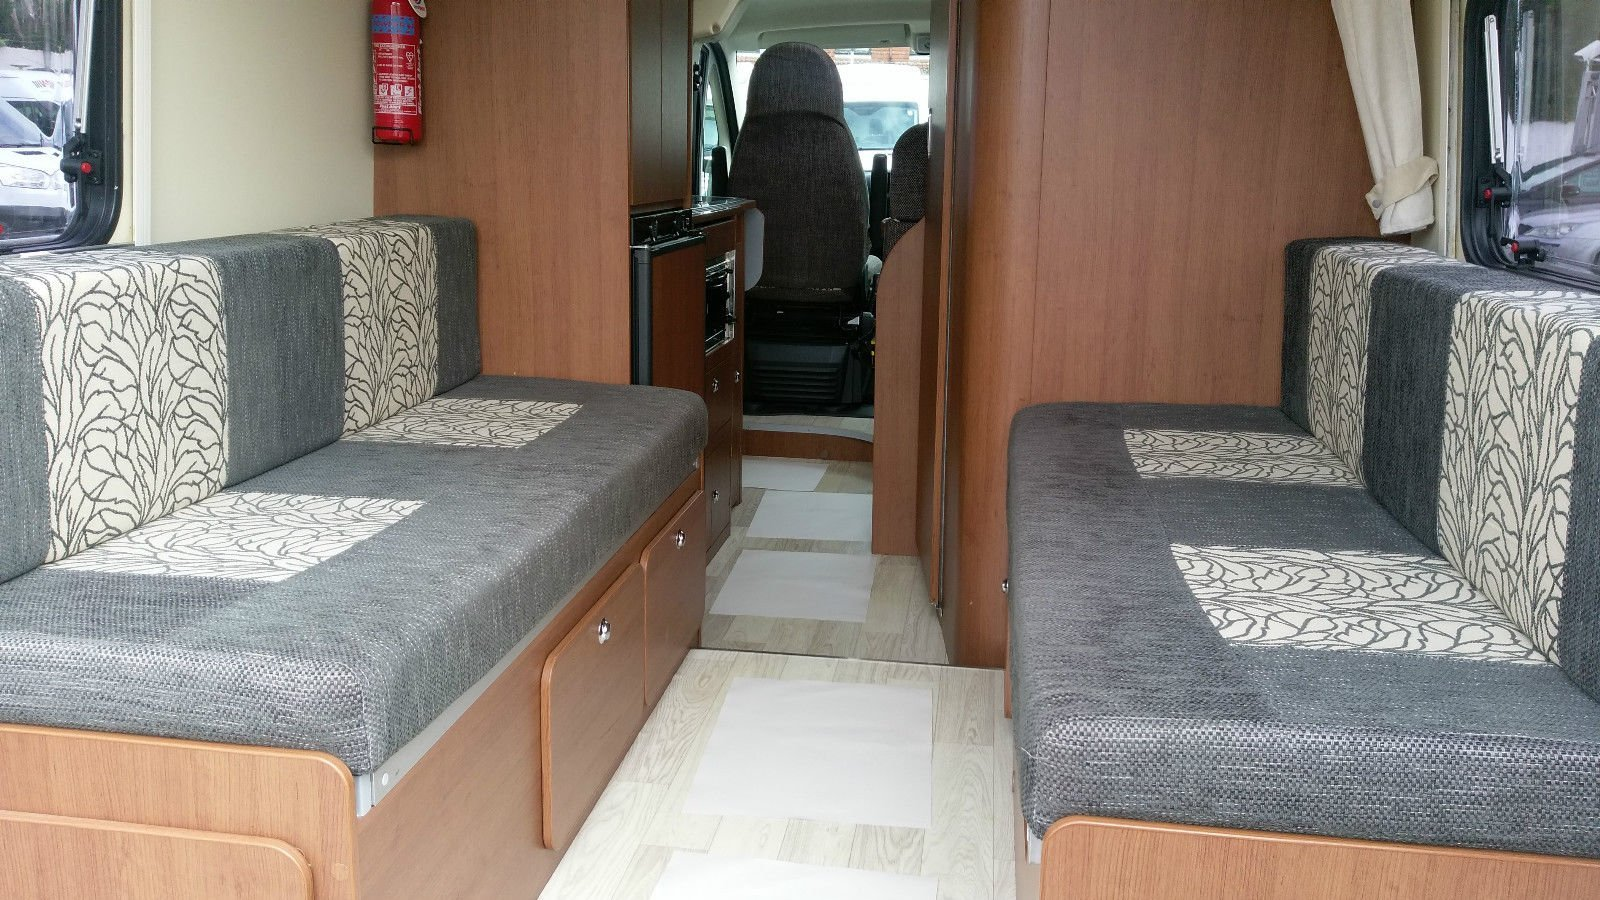 Auto-trail Tribute used motorhomes campervans for sale at Wests Motorhome Hire Essex